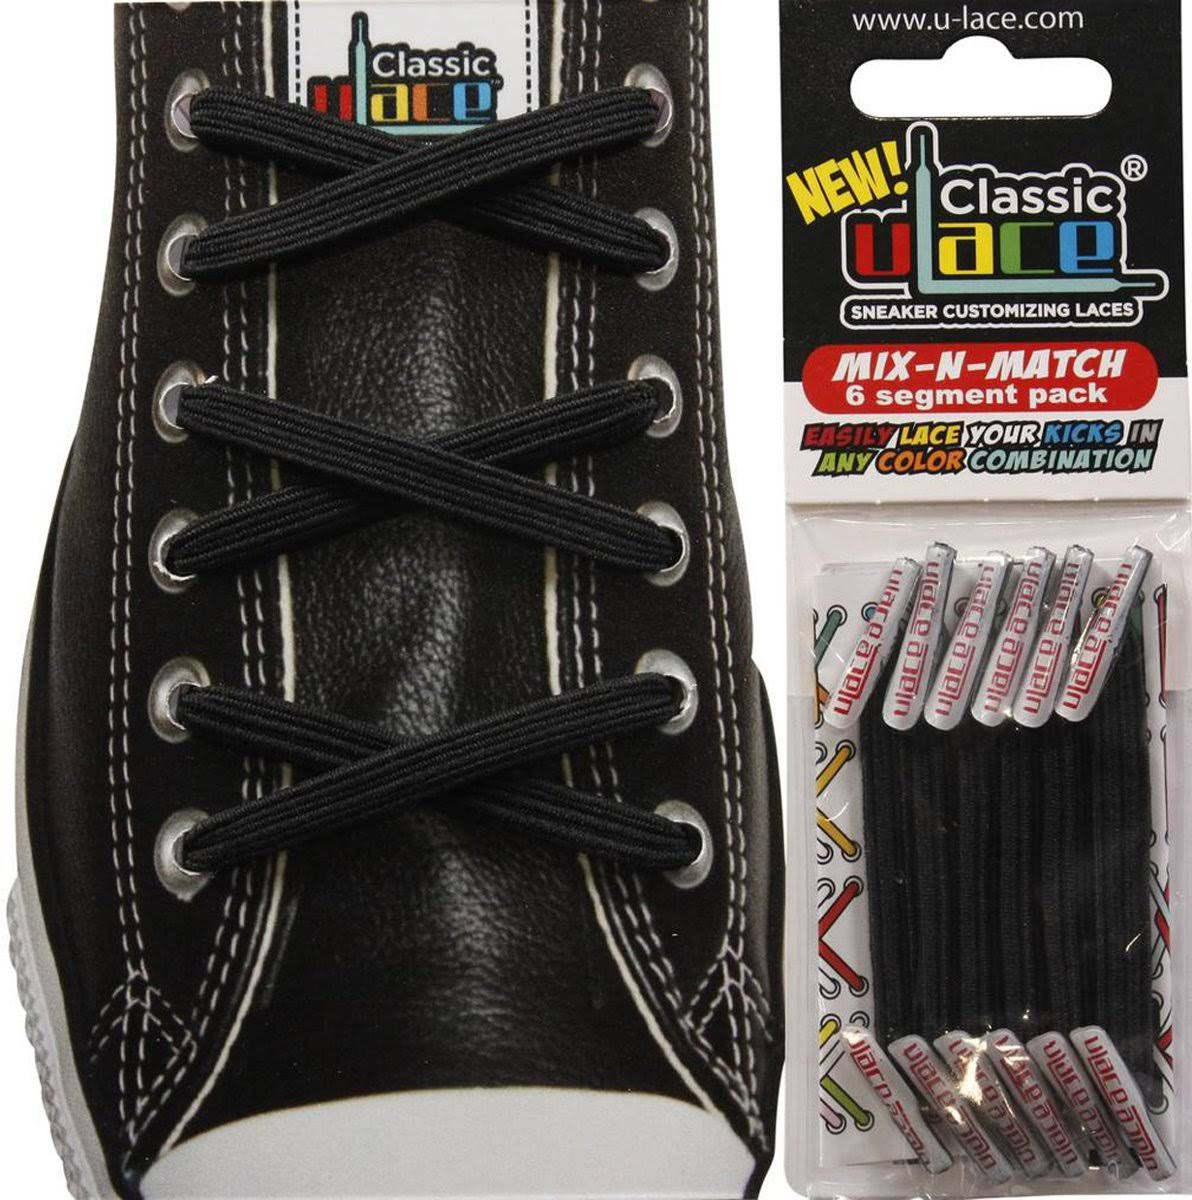 U-Lace 2969101 Unisex-Adult Mix N Match Shoe Laces - Black, One Size